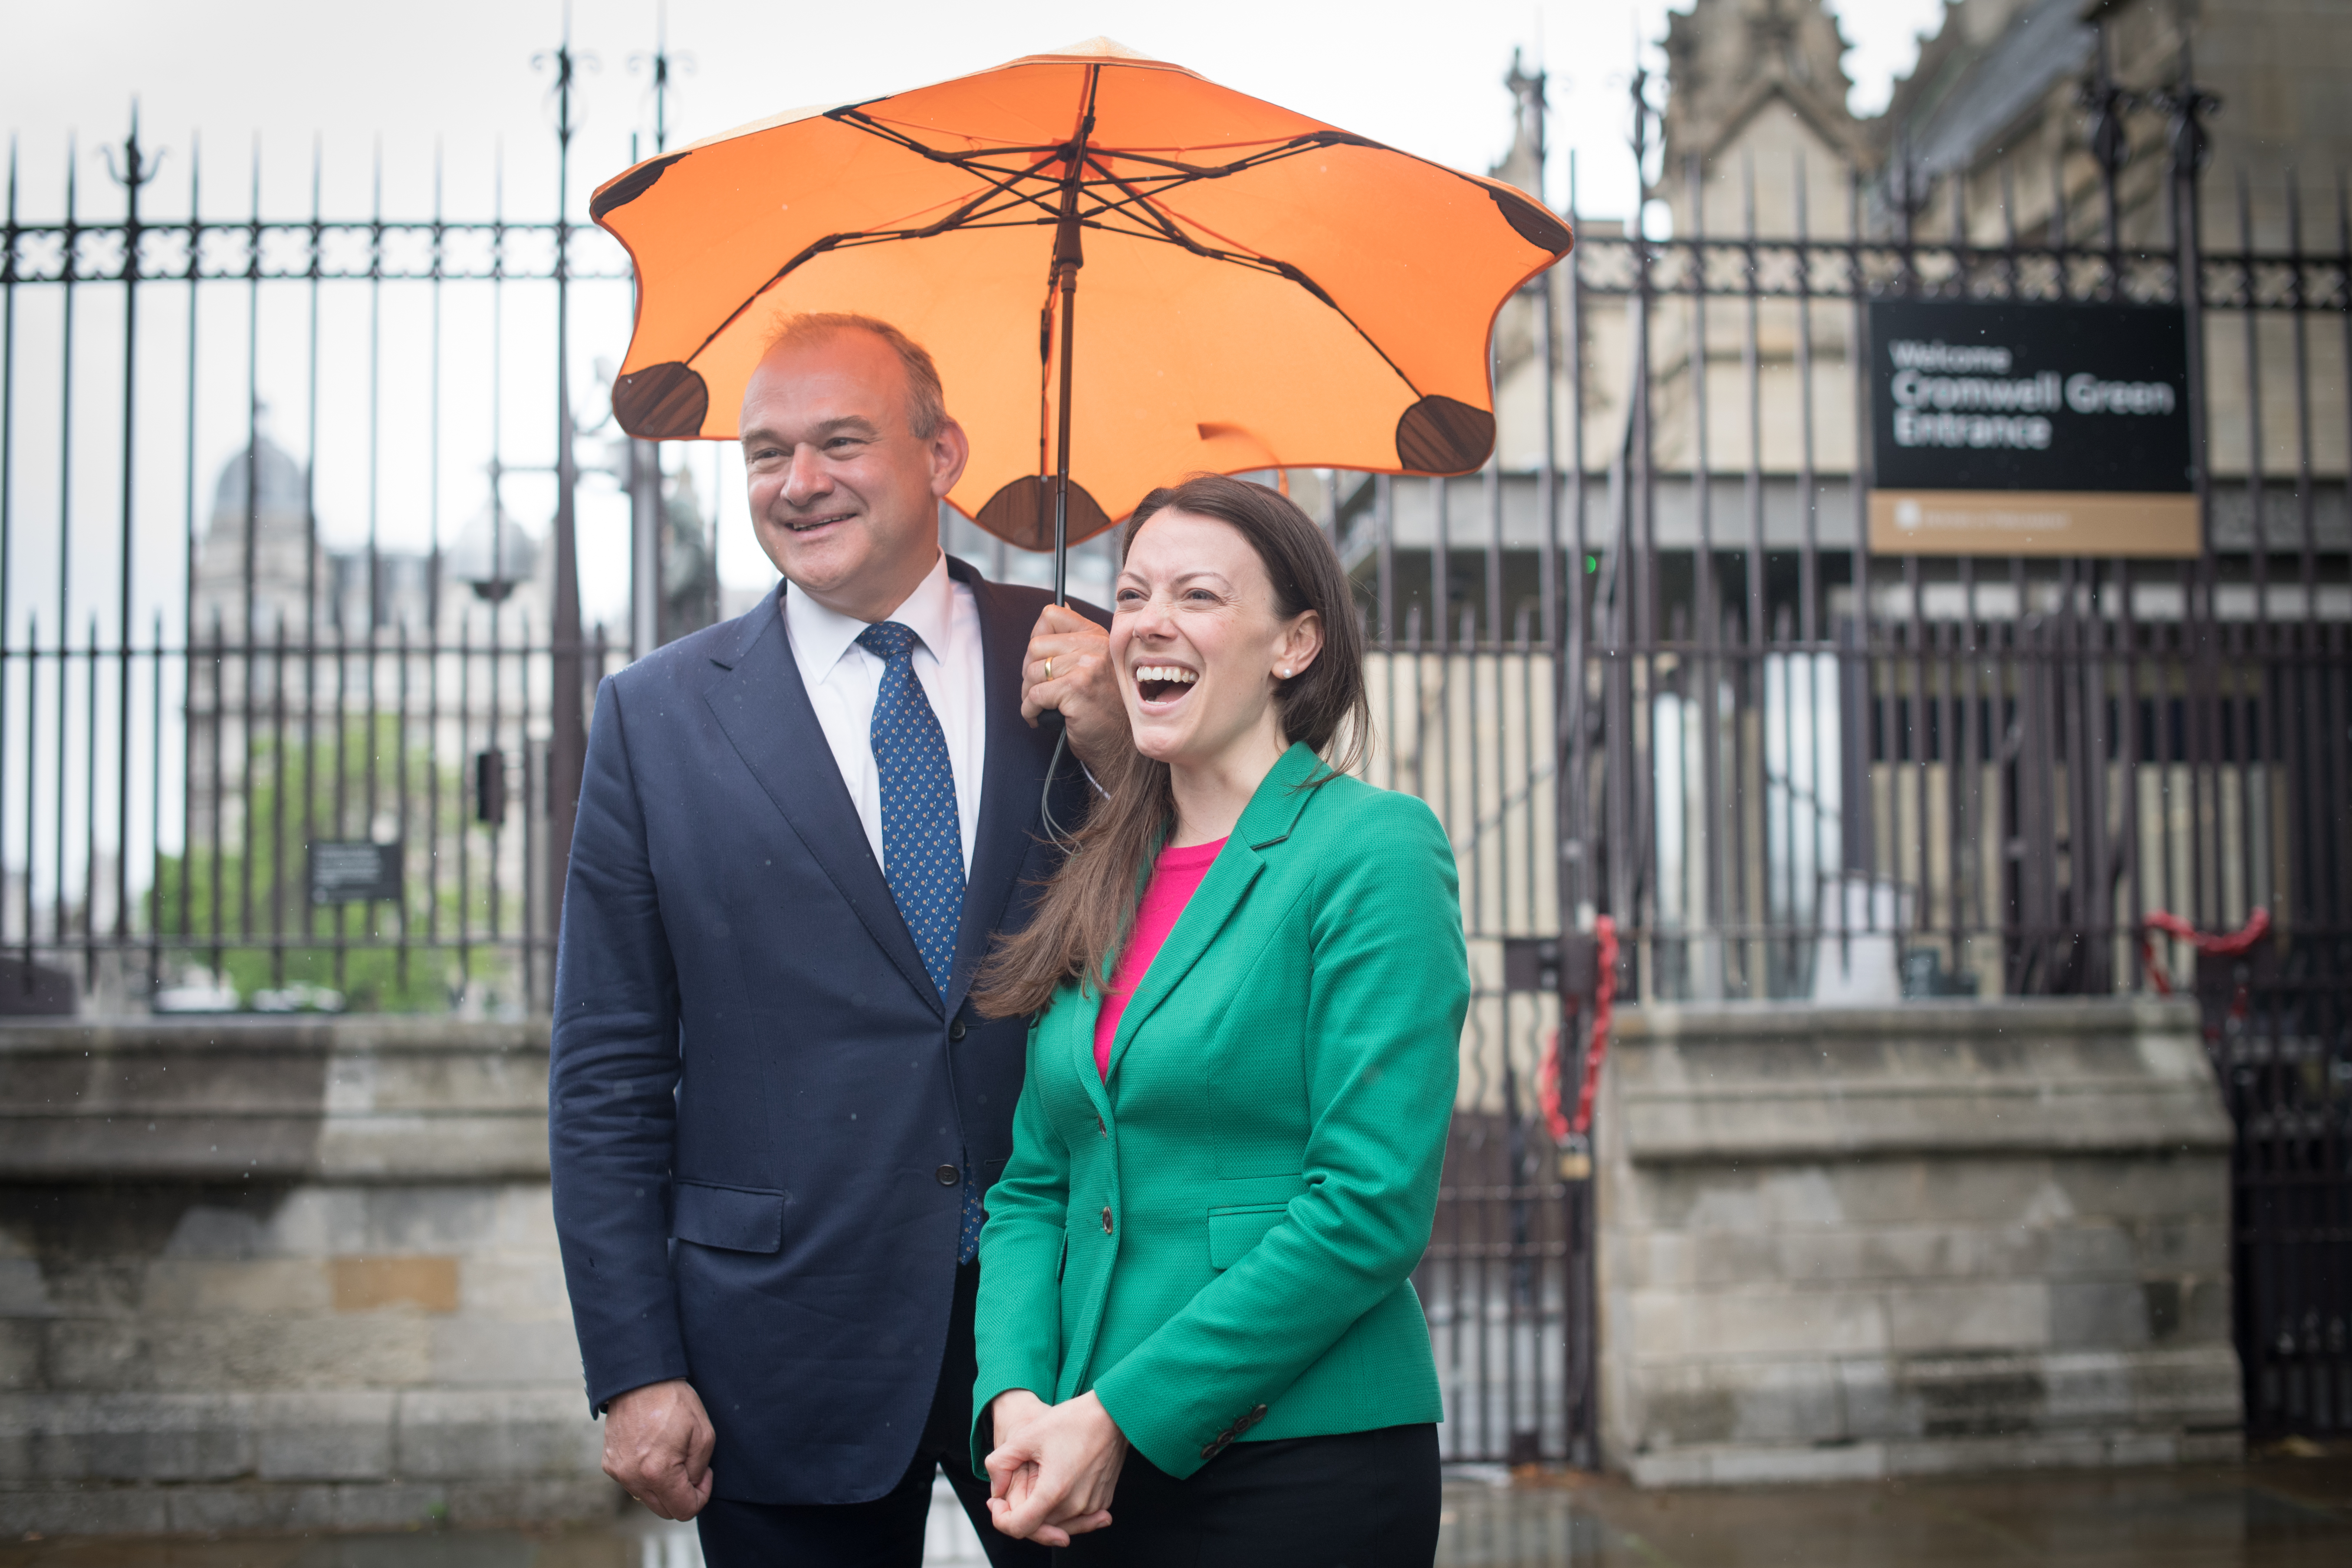 <p>Newly elected Liberal Democrat MP for Chesham and Amersham, Sarah Green is welcomed to the House of Commons by party leader, Sir Ed Davey in Westminster, London. Picture date: Monday June 21, 2021.</p>